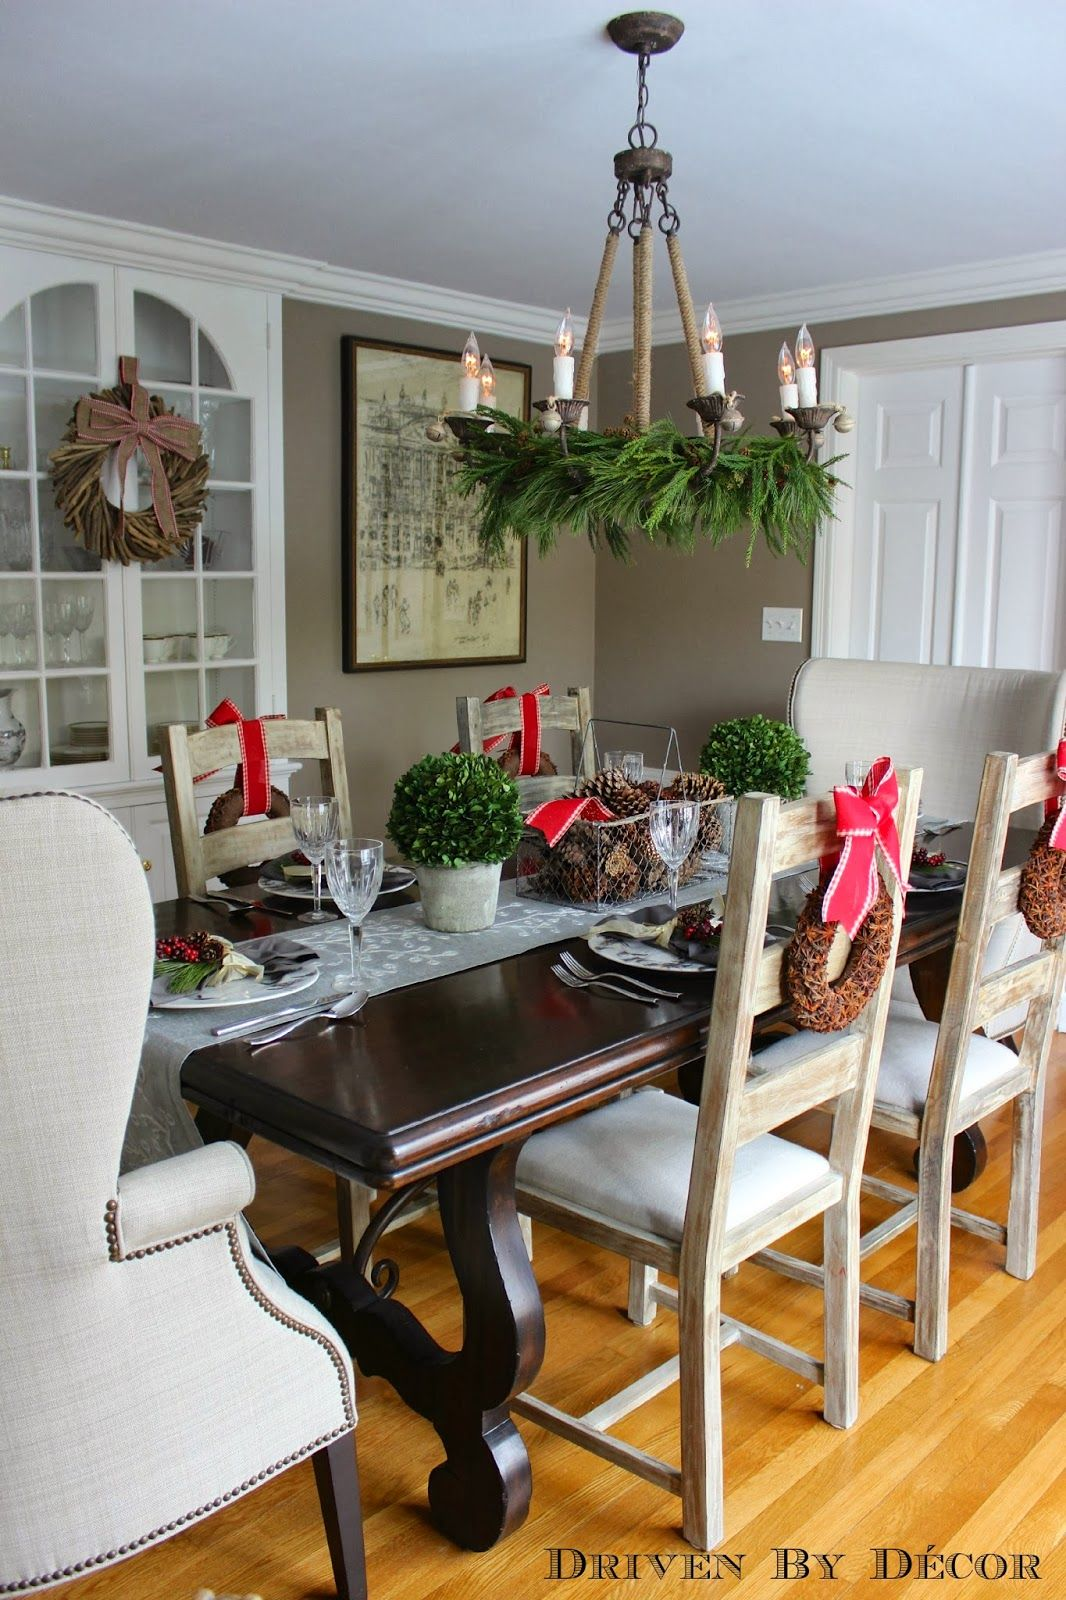 Our christmas home tour fresh green chandeliers and room classic dining room fresh greens on chandelier driven by decor our christmas home arubaitofo Images